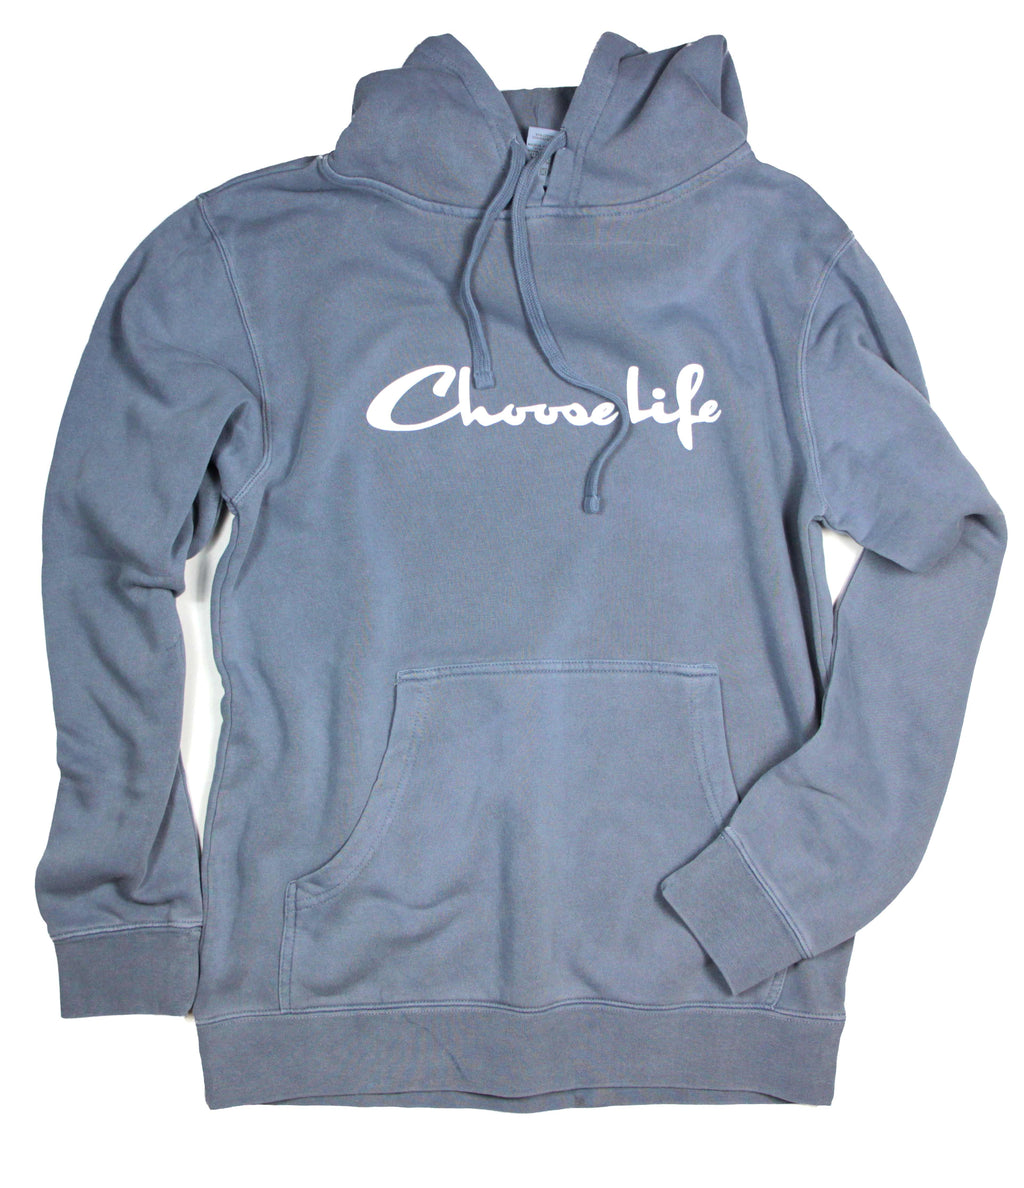 CHOOSE LIFE CHAMPION LIGHT NAVY HOODIE